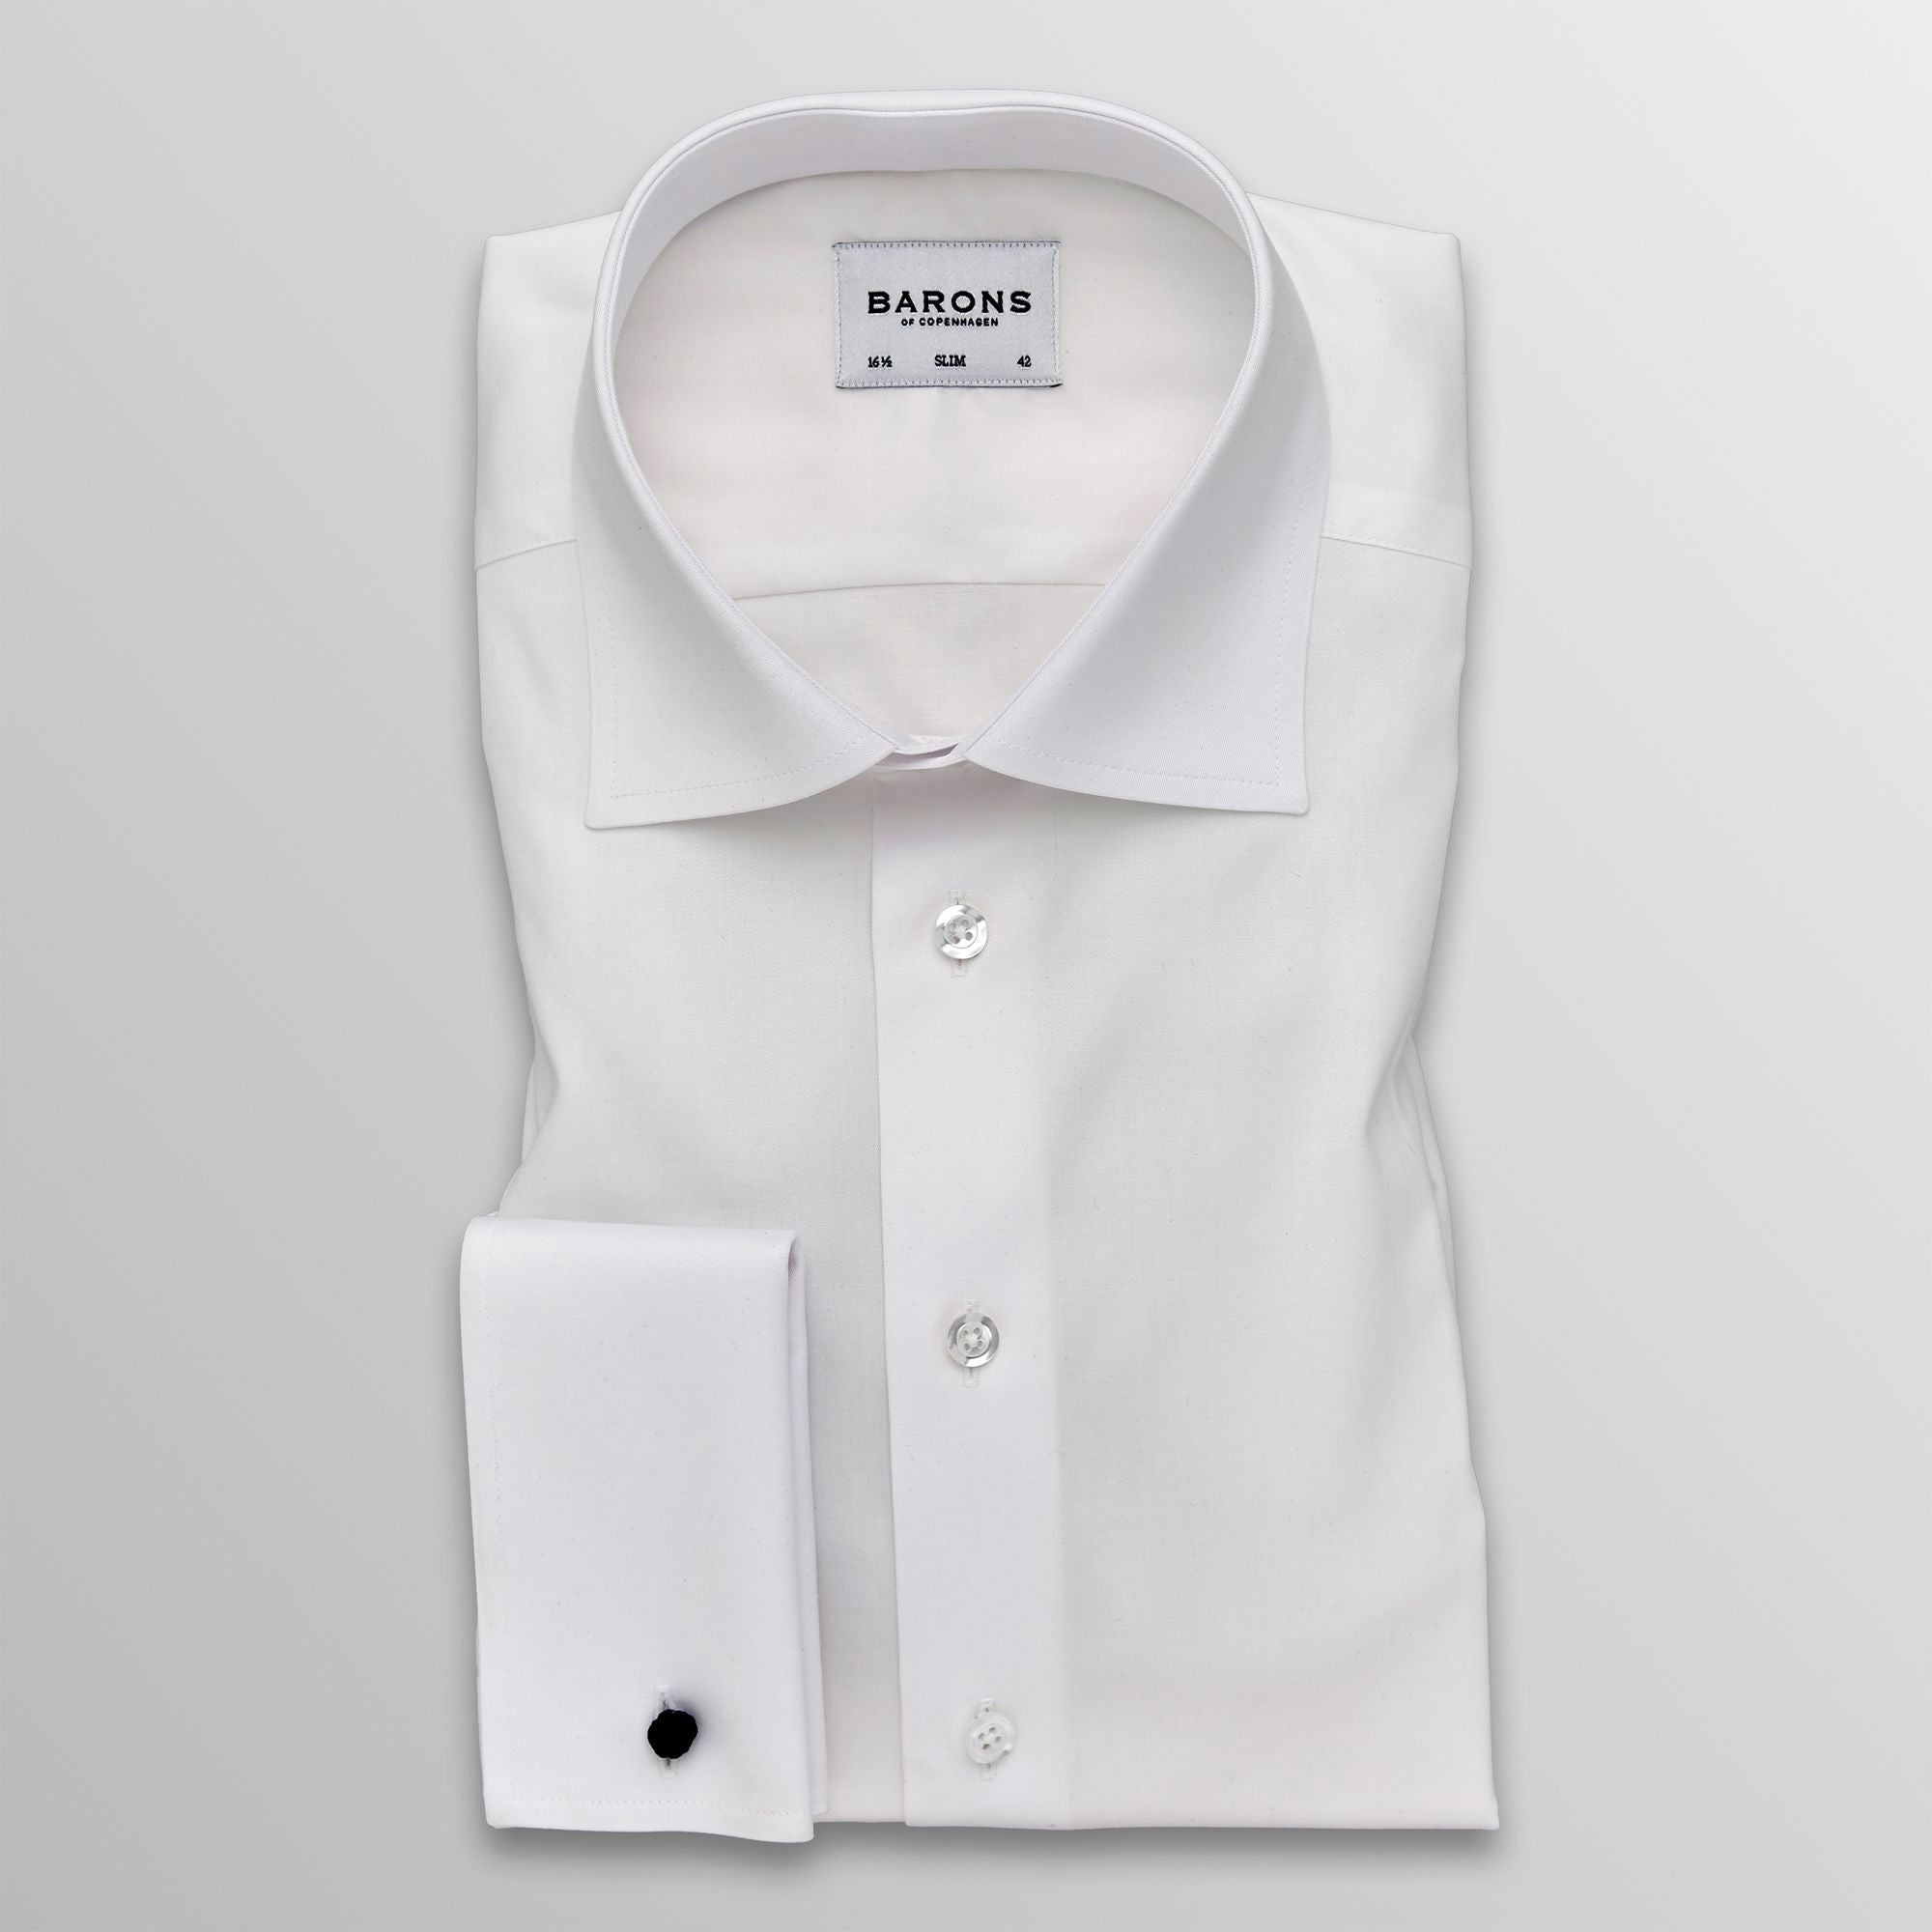 The Chiarman - Business shirt with double cuffs for the oldschool gentleman!